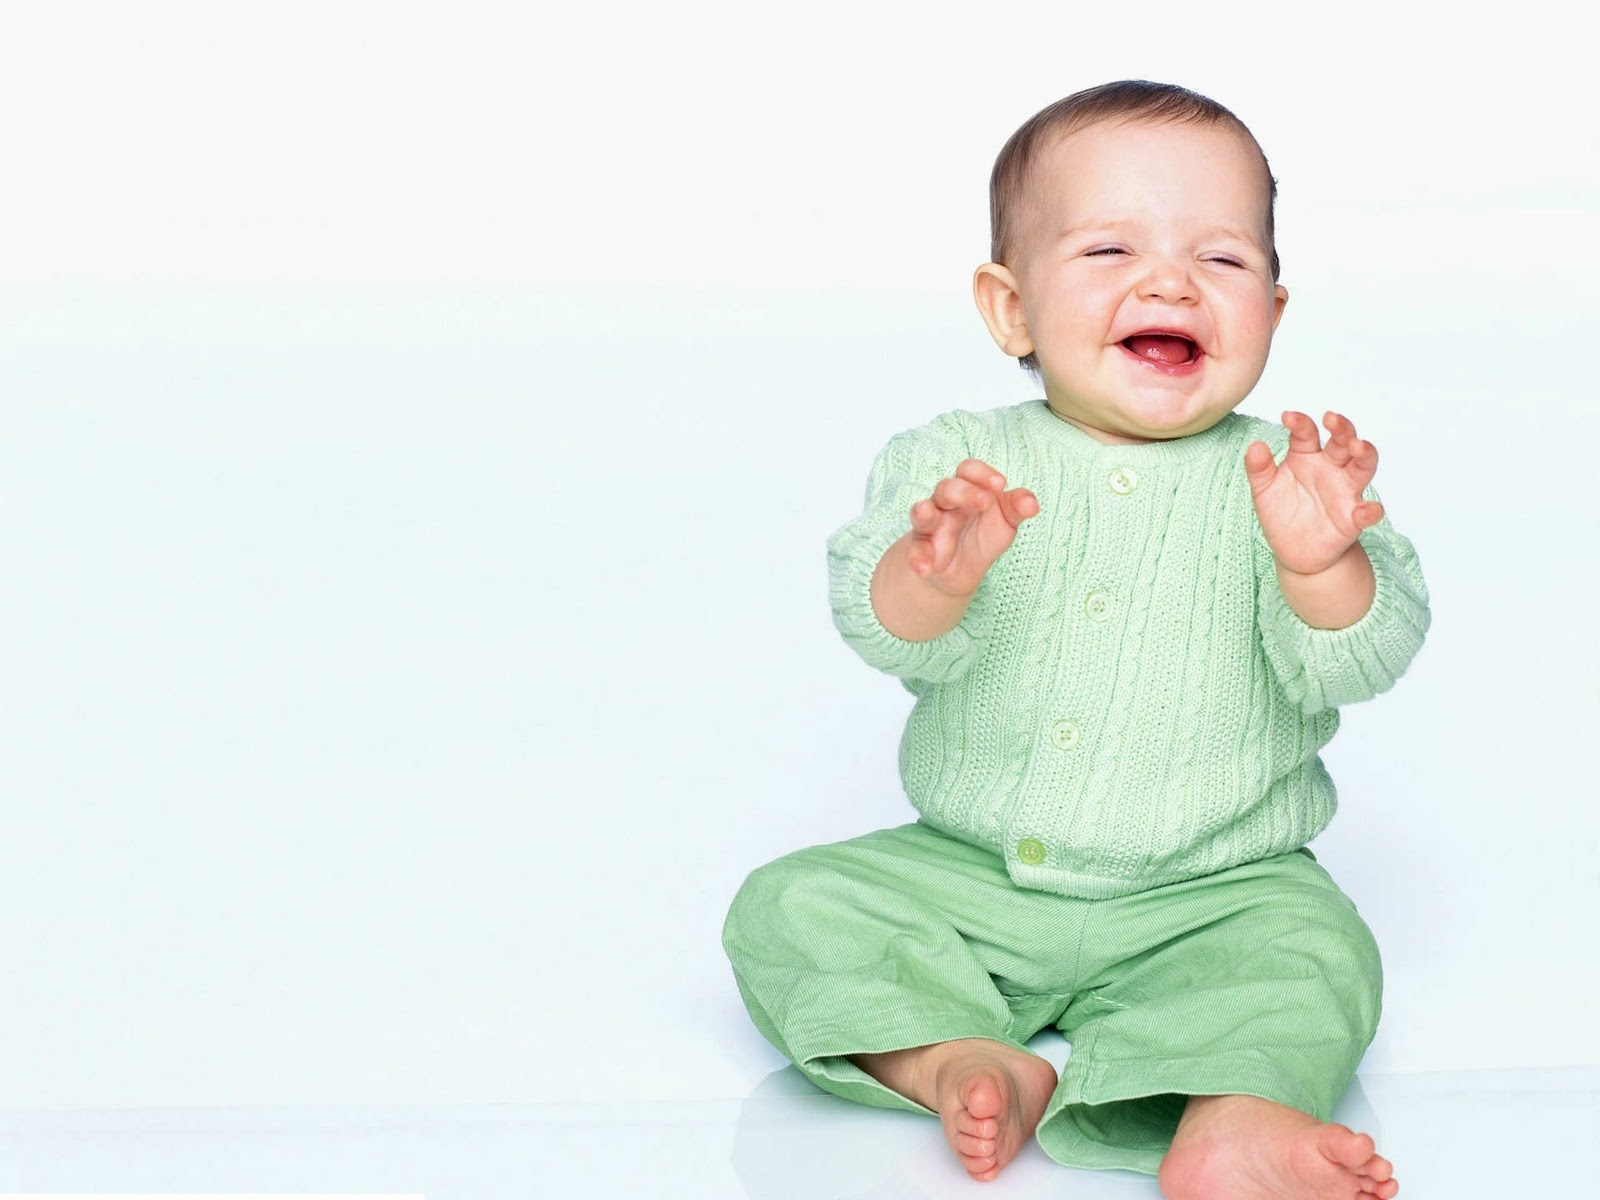 Cute Laughing Baby Wallpapers: Cute Babies All Around The World